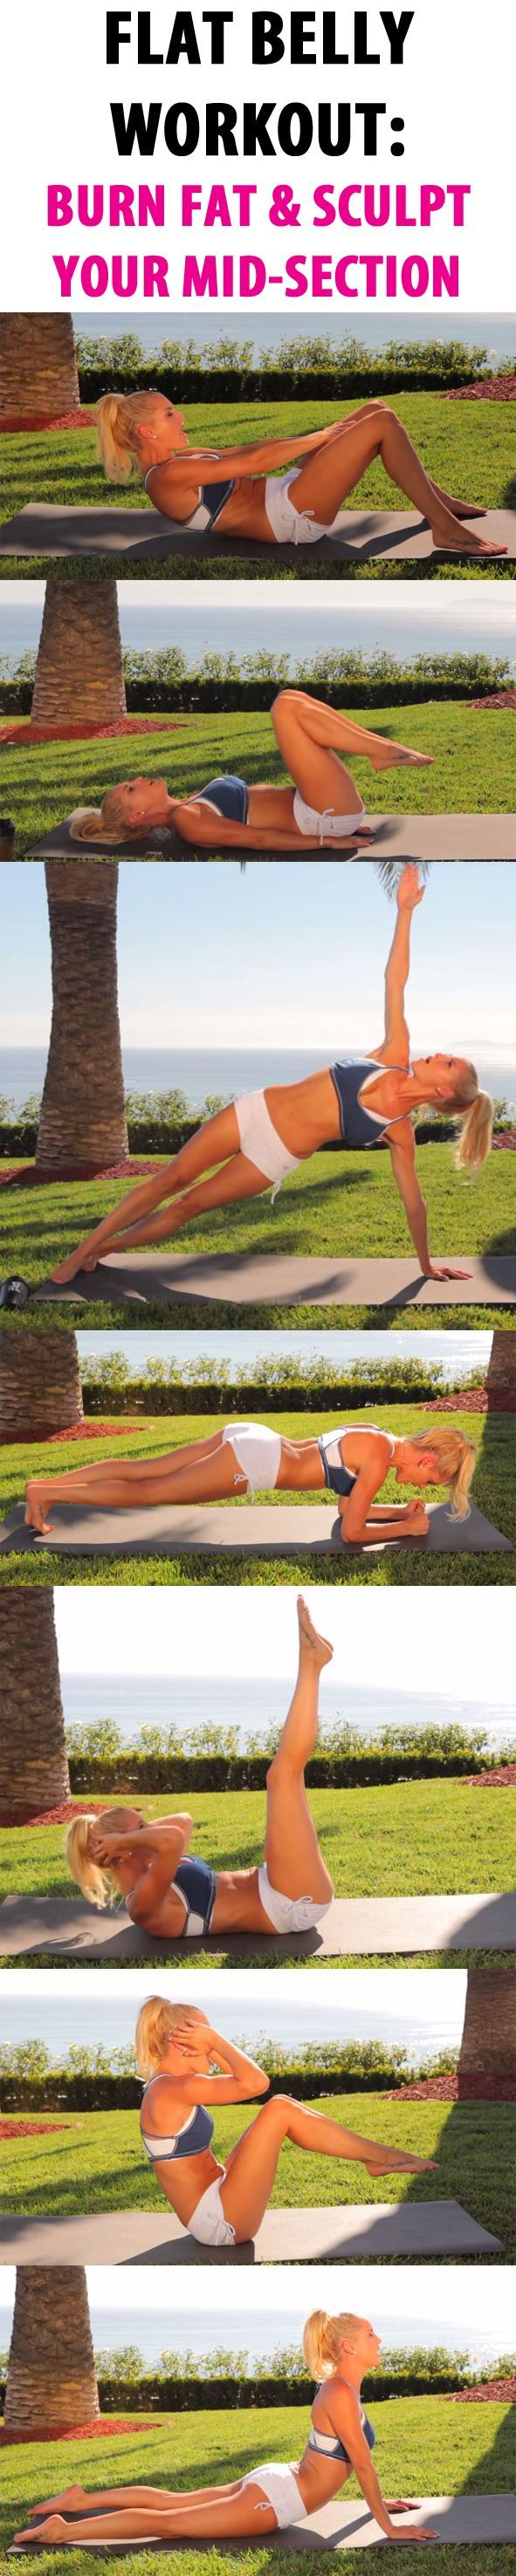 If you love working out your abs this routine is for you. For beginner and intermediate levels. You will be sore but stronger. This workout burns 205 - 282 calories. Do this routine 2-4 times a week increase reps and shorten rest time as you progress.